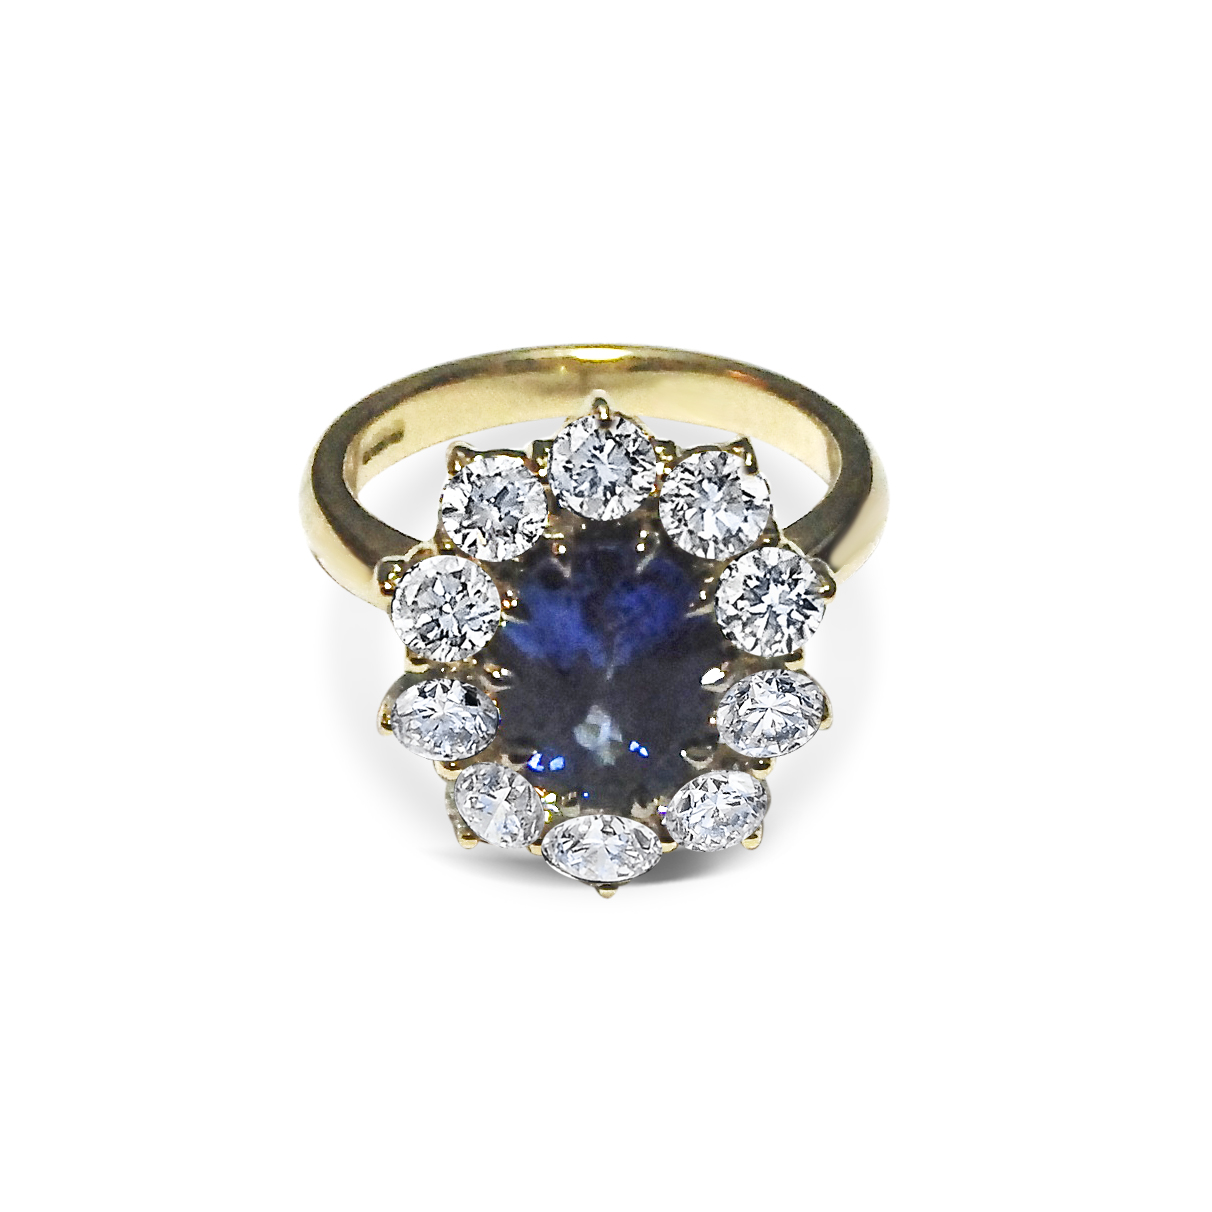 Sapphire-and-diamond-cluster-ring-mounted-in-yellow-gold.jpg